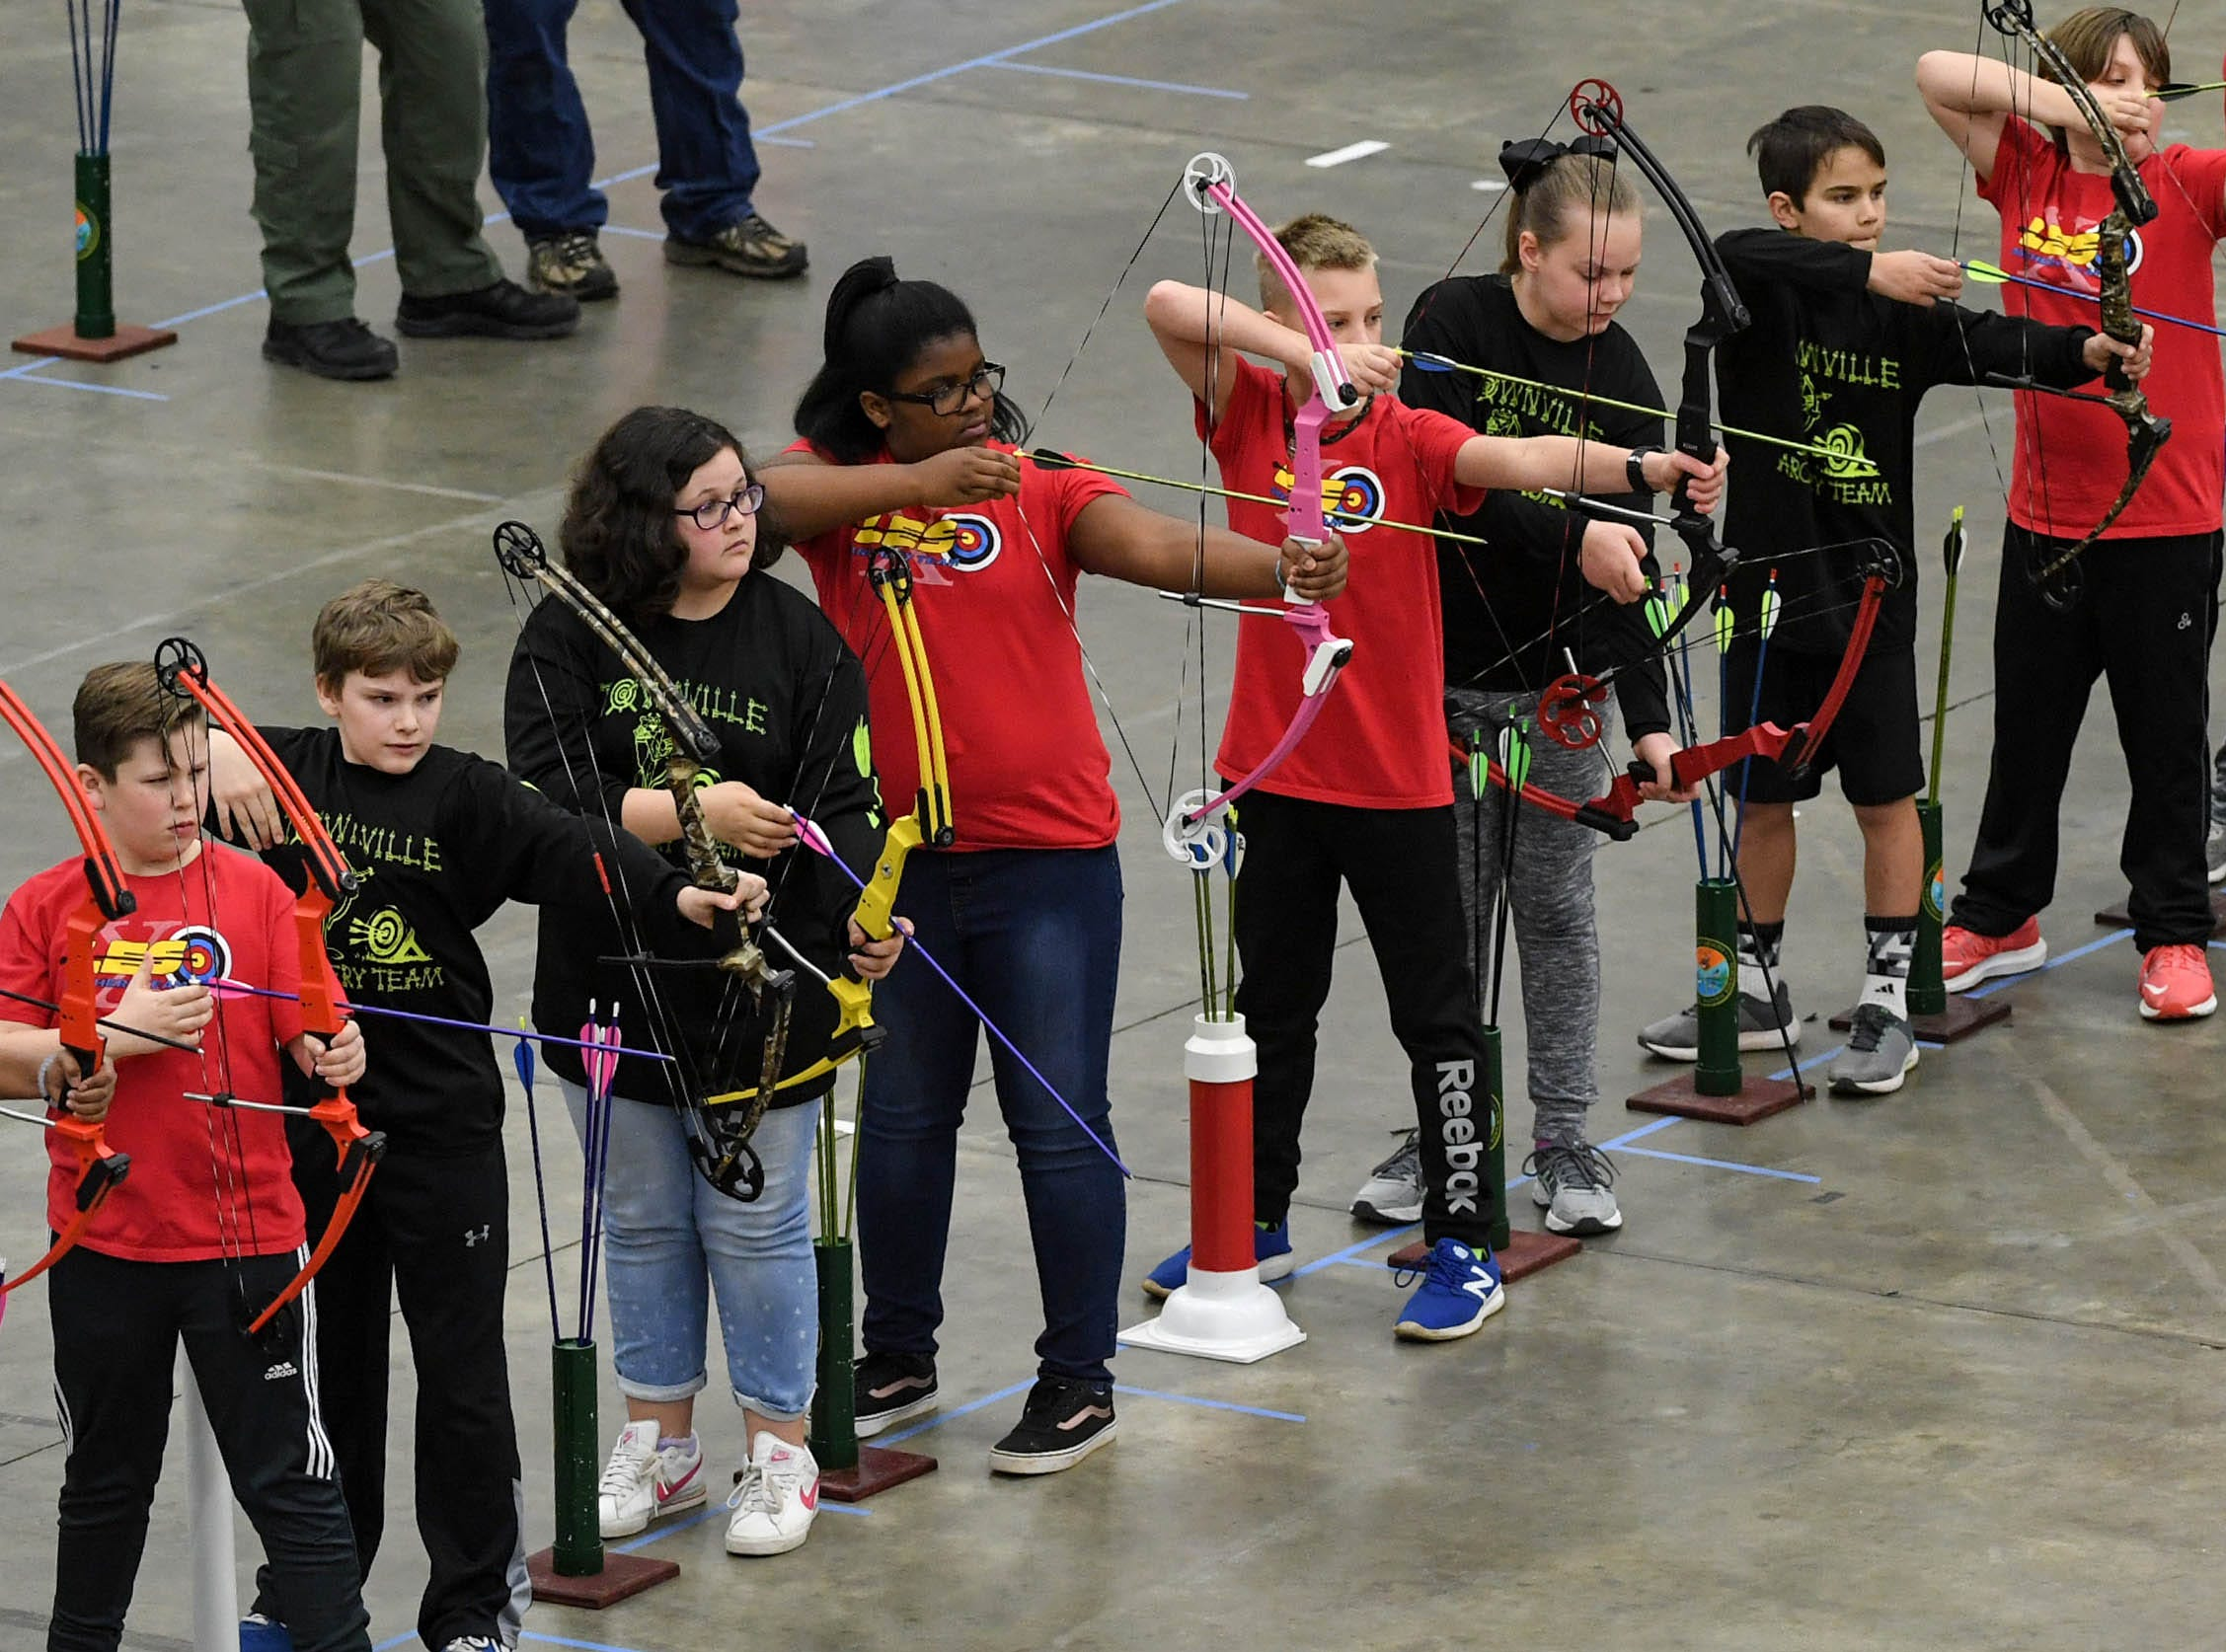 Students get ready to release arrows during the South Carolina Department of Natural Resources regional National Archery in the Schools Program (NASP) regional competition at the Anderson Civic Center Wednesday.  The program, which awards $50,000 in scholarships to high school seniors, is a joint venture between state departments of Education and Wildlife. The competition in Anderson, leading up to the state finals March 26-28 in Sumter, had 950 children from 14 elementary and 23 high schools around the state.